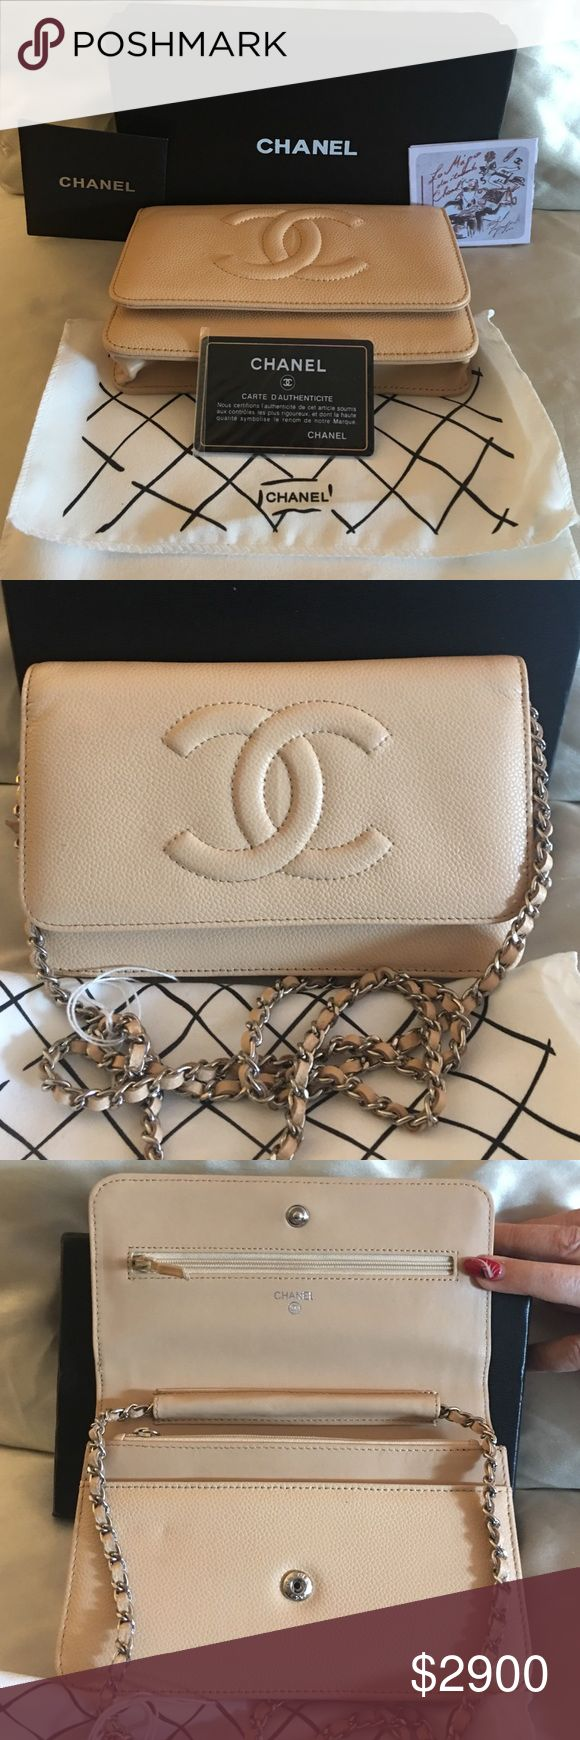 ❤️❤️❤️authentic  chanel clutch never used  this beautiful chanel authentic channel bag never used made in France comes in box and dust cover with authentic card this is a classy bag no flaws what so every as it has never been used please ask if need more pic or details.  Channel Bags Clutches & Wristlets